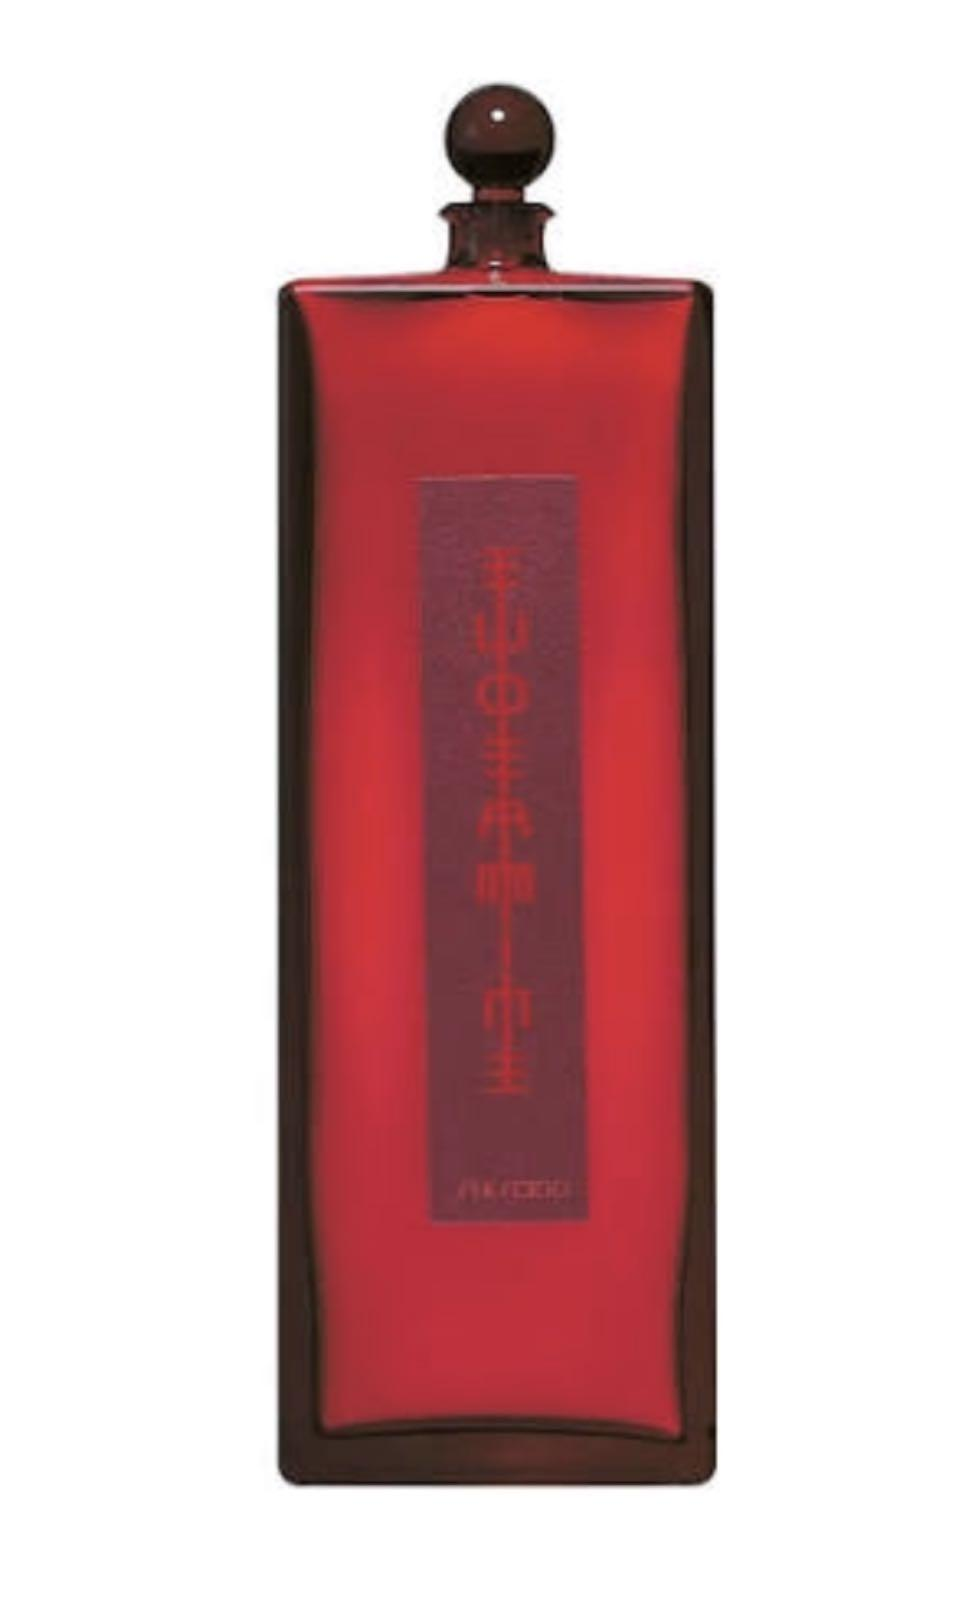 Shiseido Eudermine Revitalizing Essence